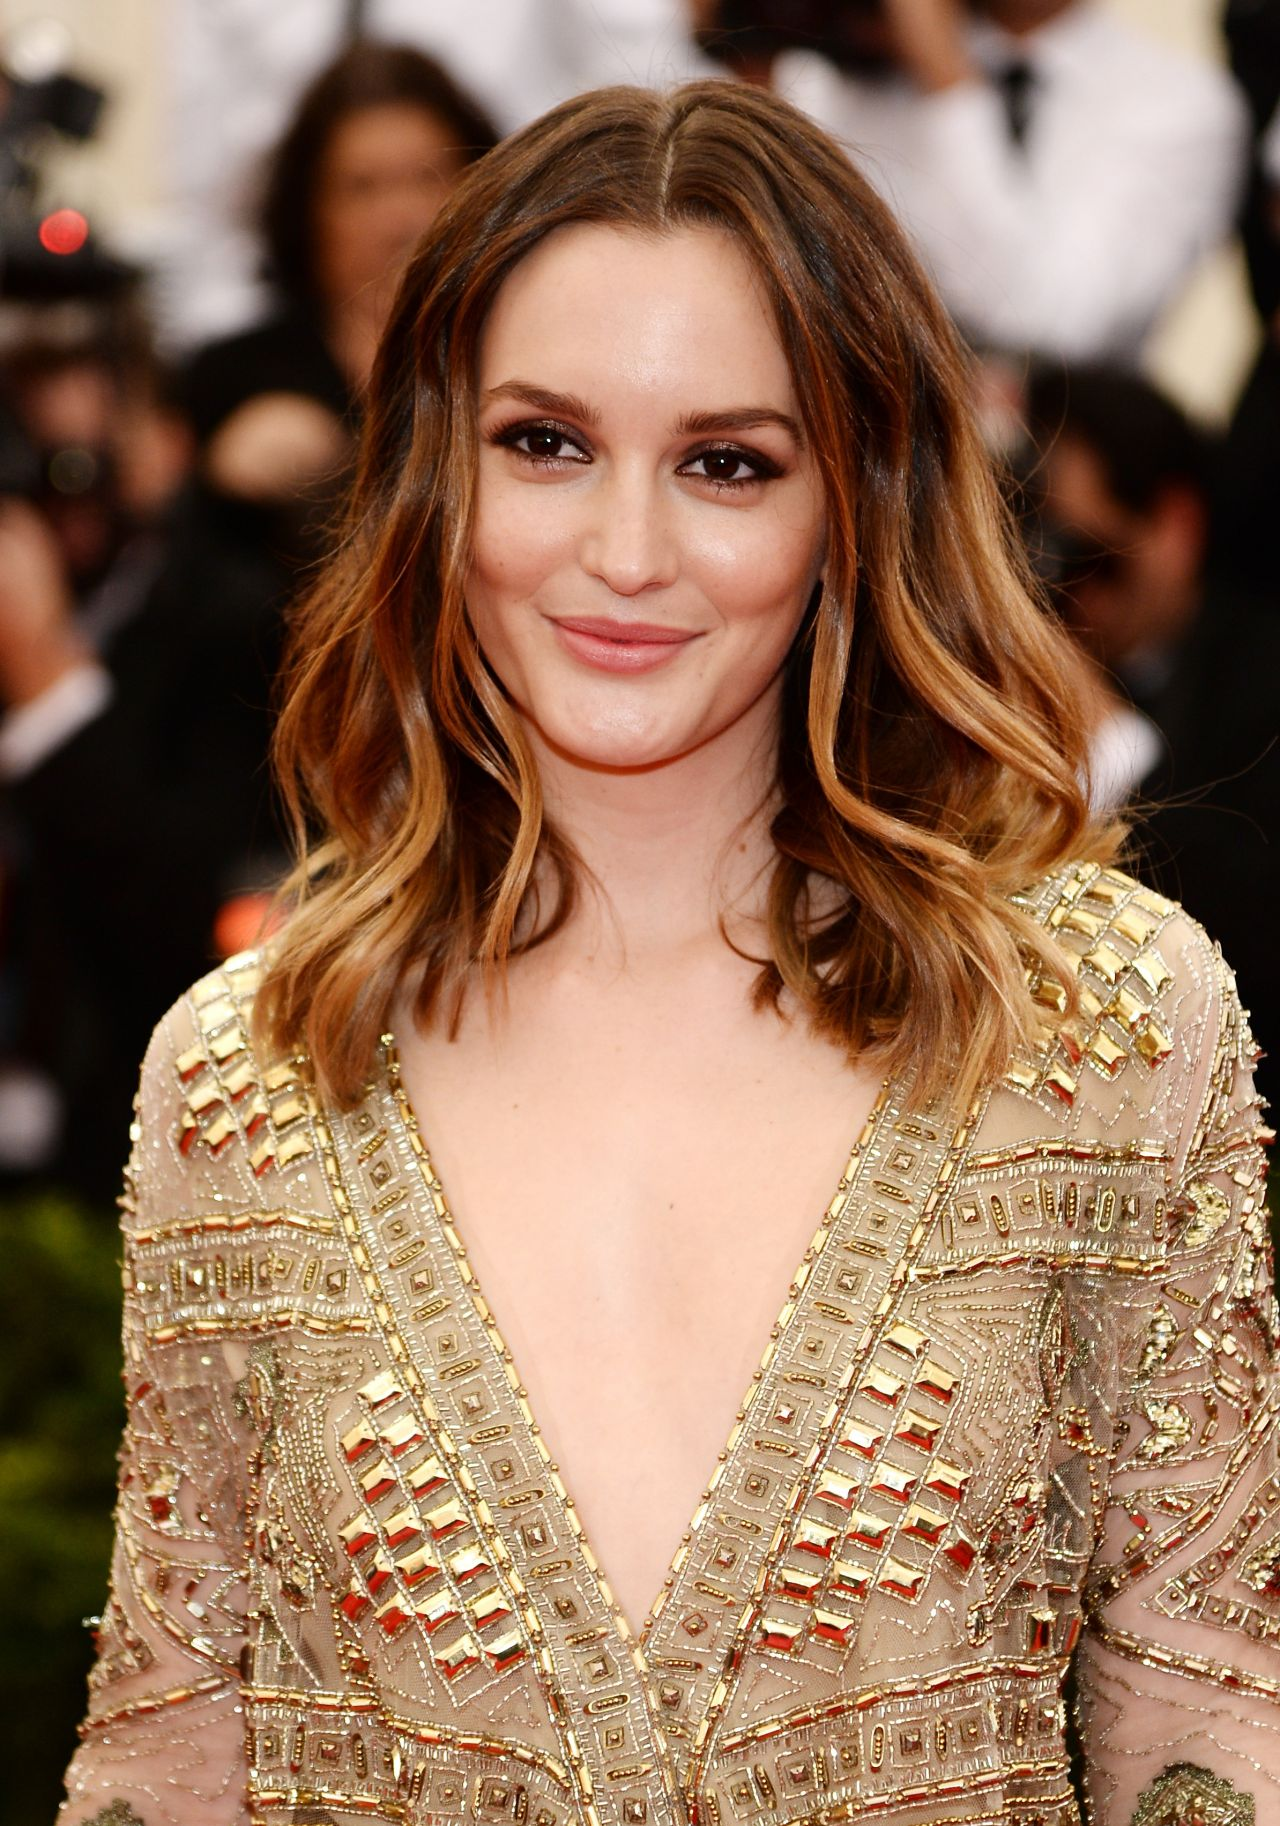 Leighton Meester Wearing Emilio Pucci Sheer Gown – 2014 Met Costume ...